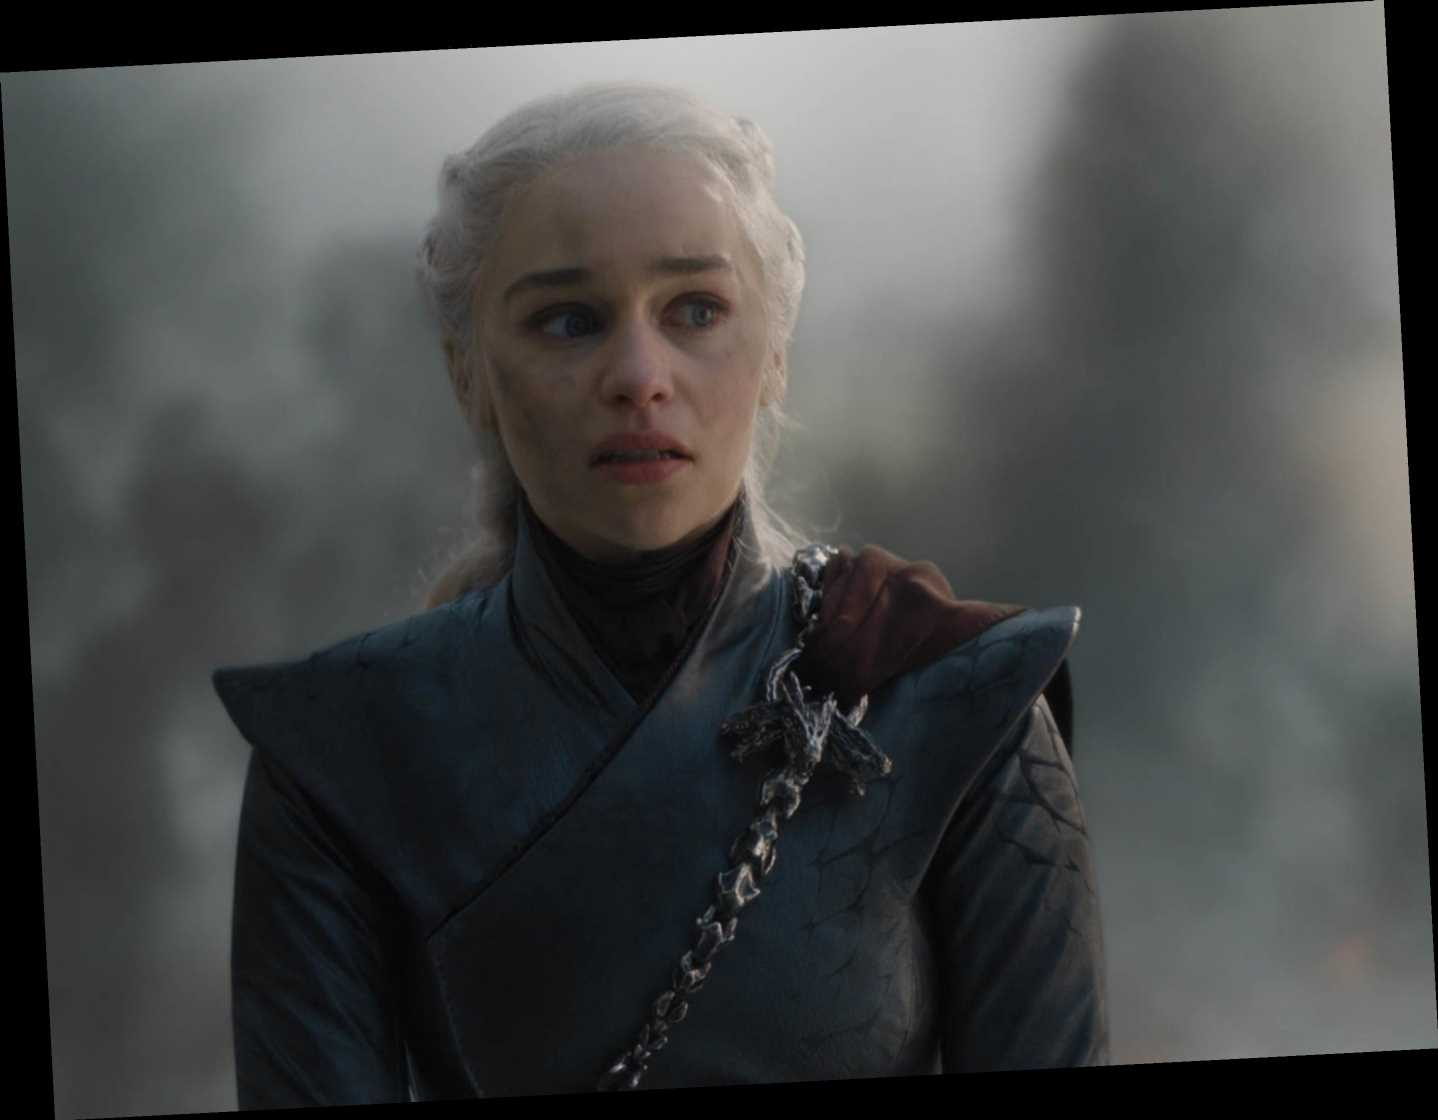 Game of Thrones fans spot major oversight that could have stopped Daenerys Targaryen's 'Mad Queen' bloodbath – The Sun